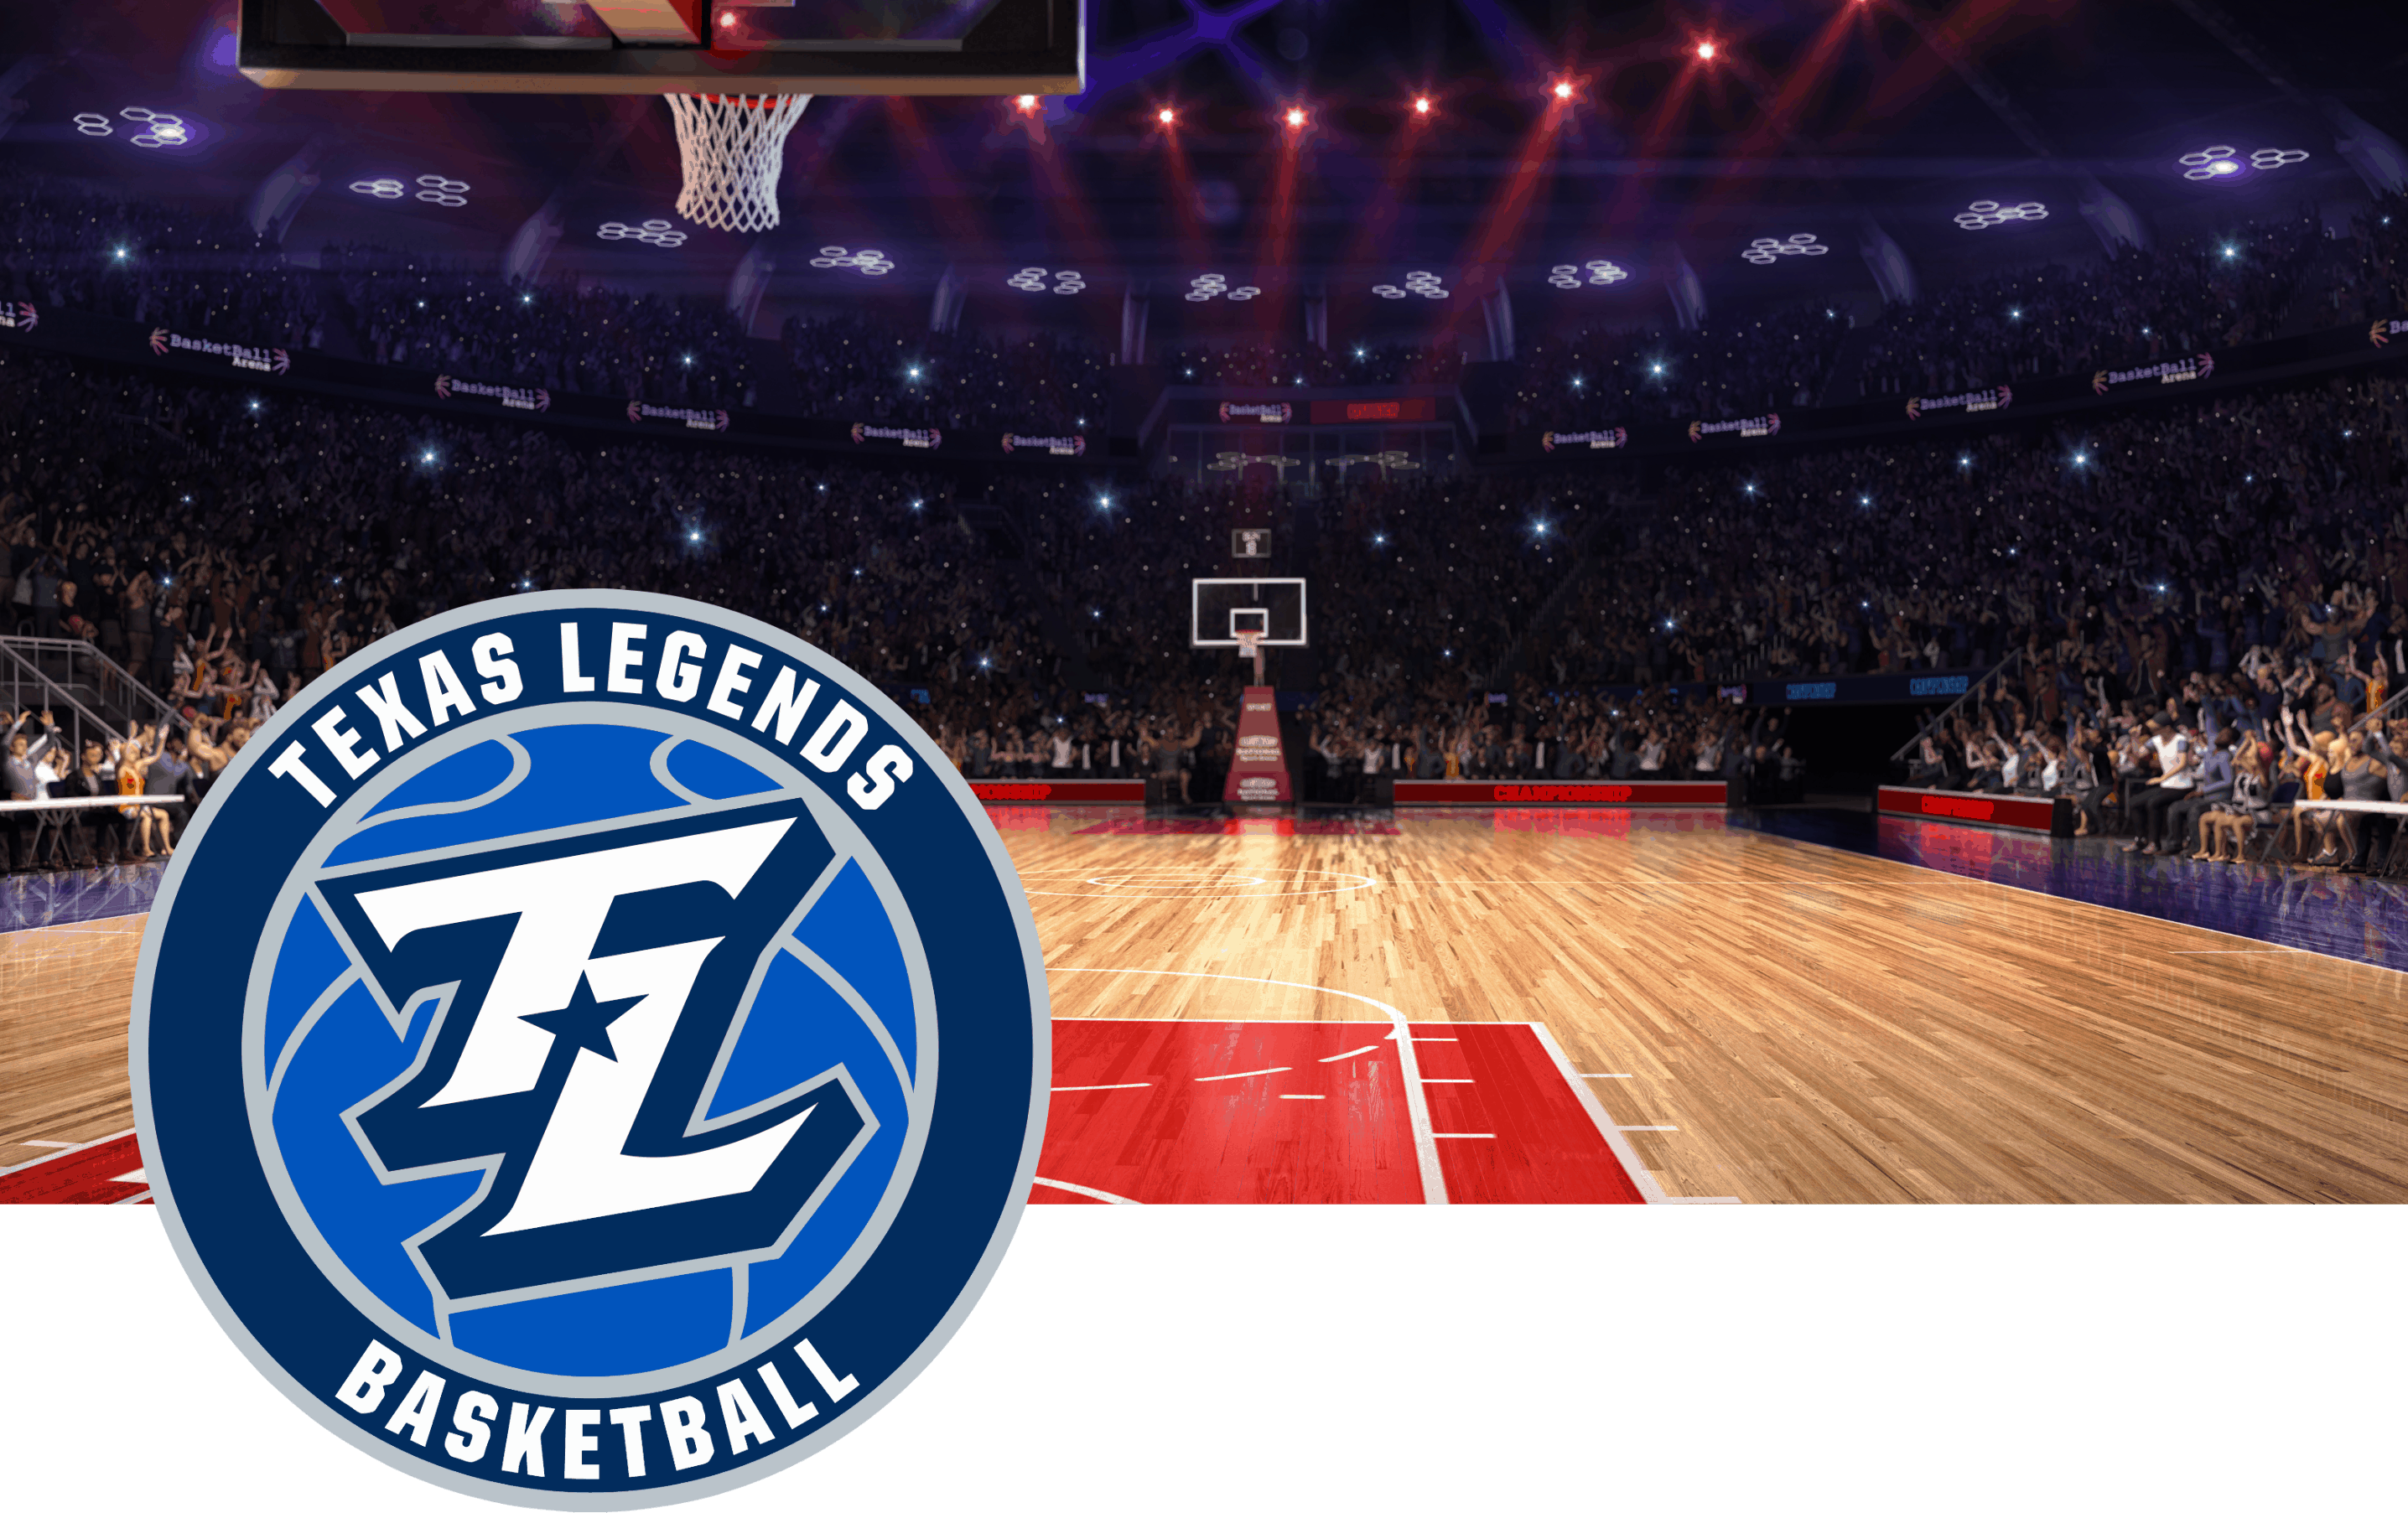 Texas Legends Photo